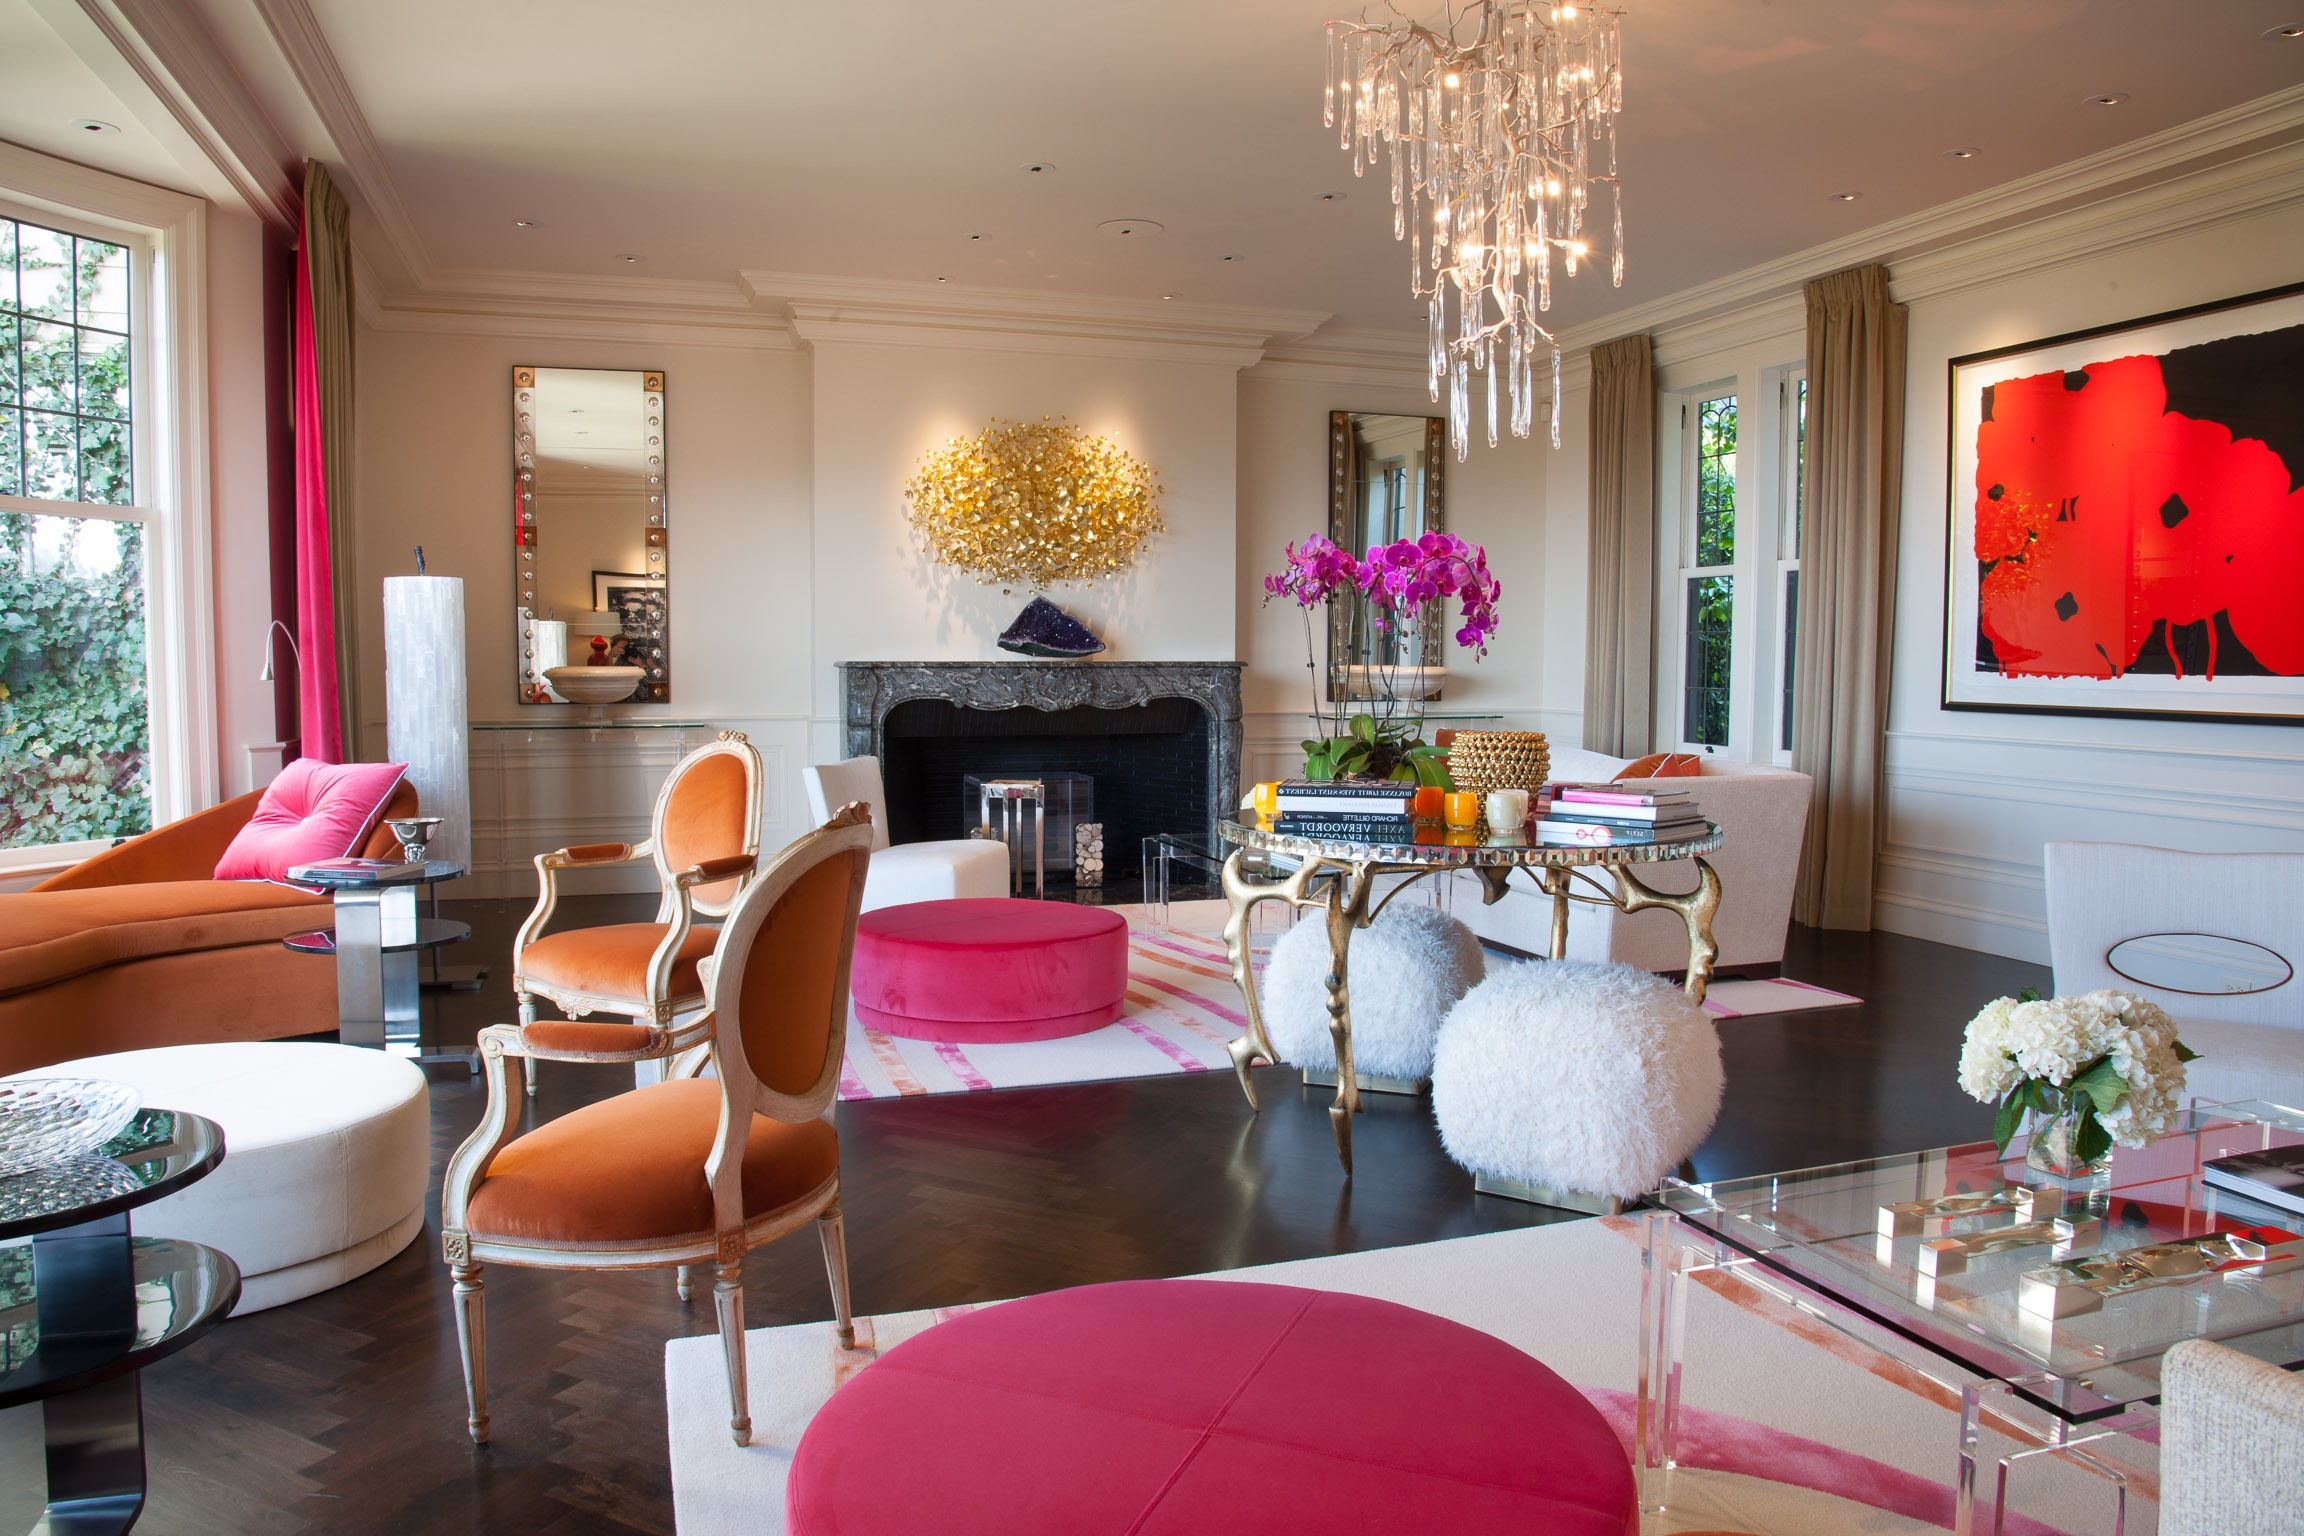 Glamorous Living Room Decor (Image 9 of 32)